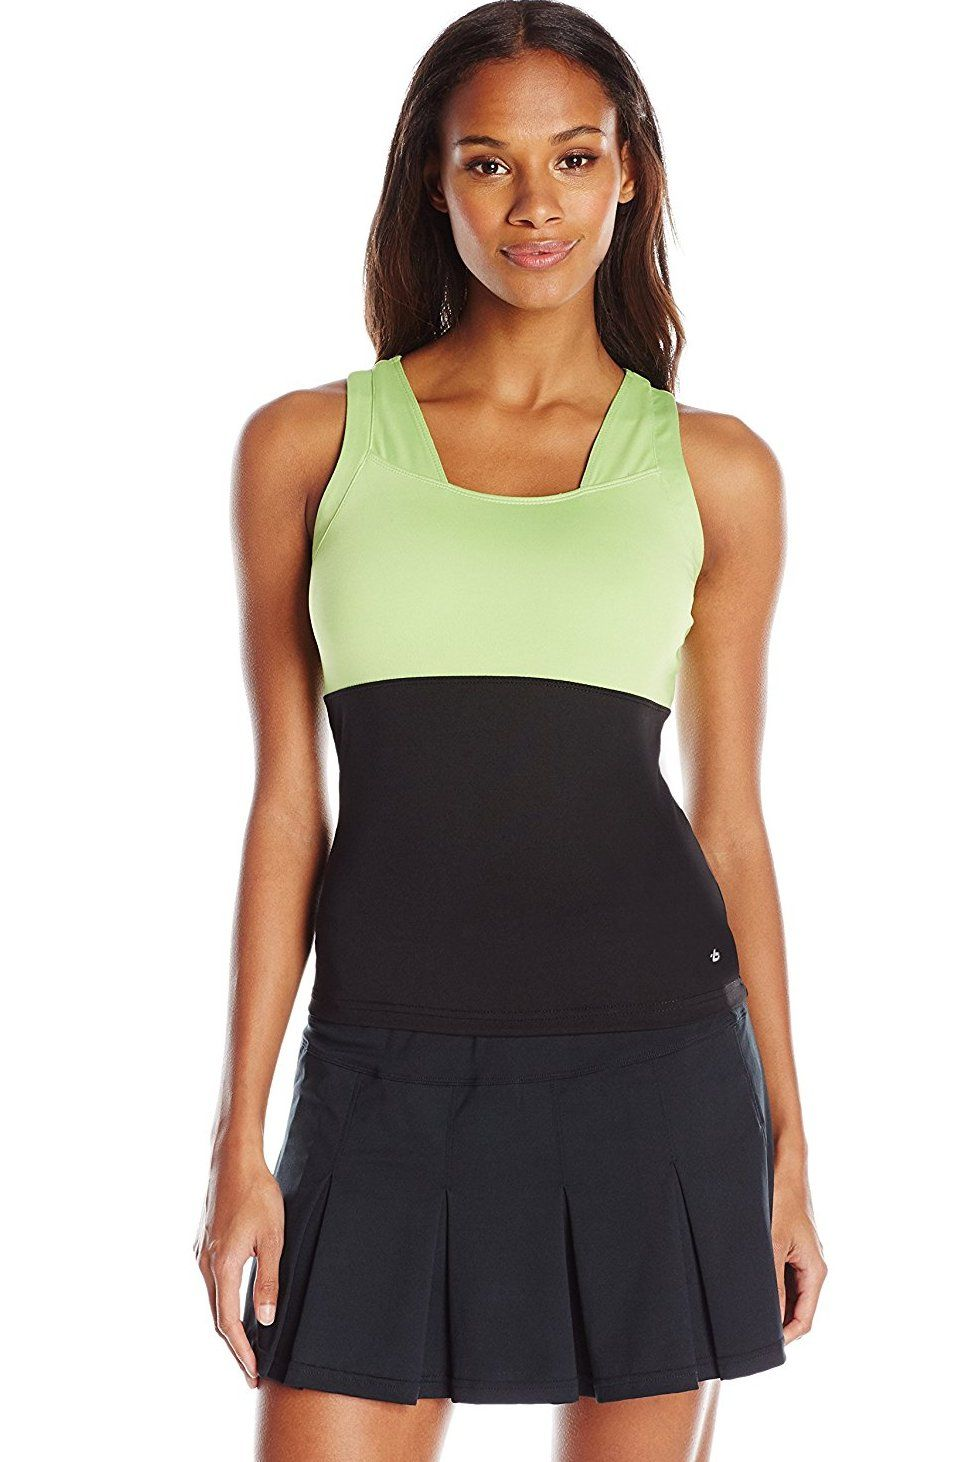 8430b3078e6fa Bollé Women s Twist of Lime Raceback Tank Top with Bra  Buy Now from Amazon